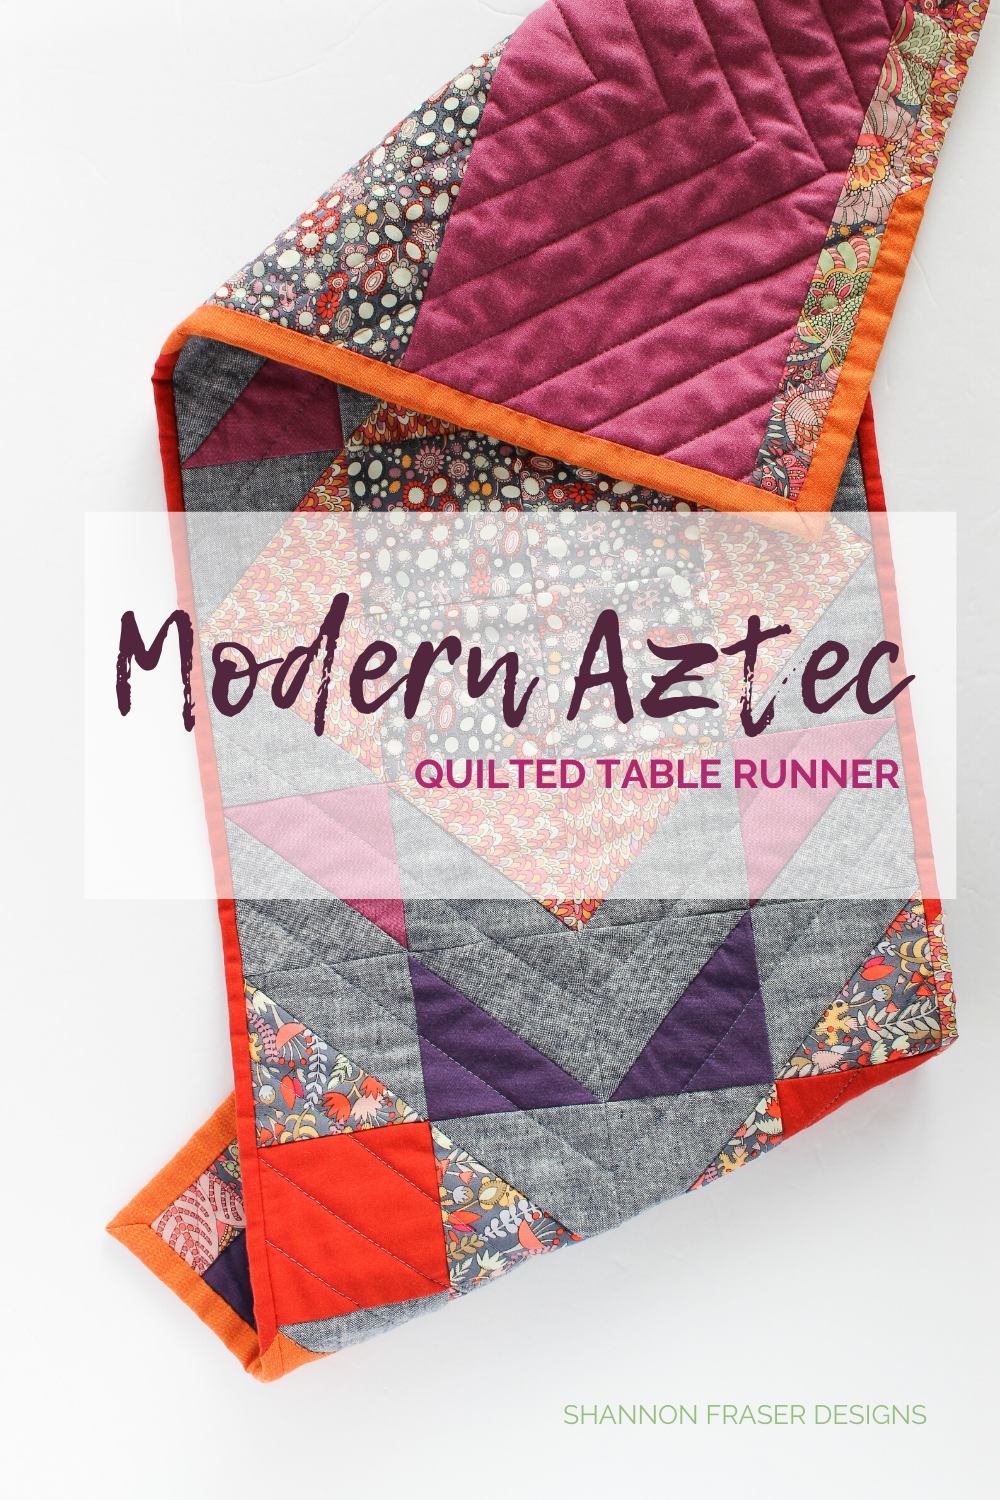 Modern Aztec quilted table runner folded on the table - red, orange, purple, navy and floral table runner | Fall home decor | Shannon Fraser Designs #tablerunner